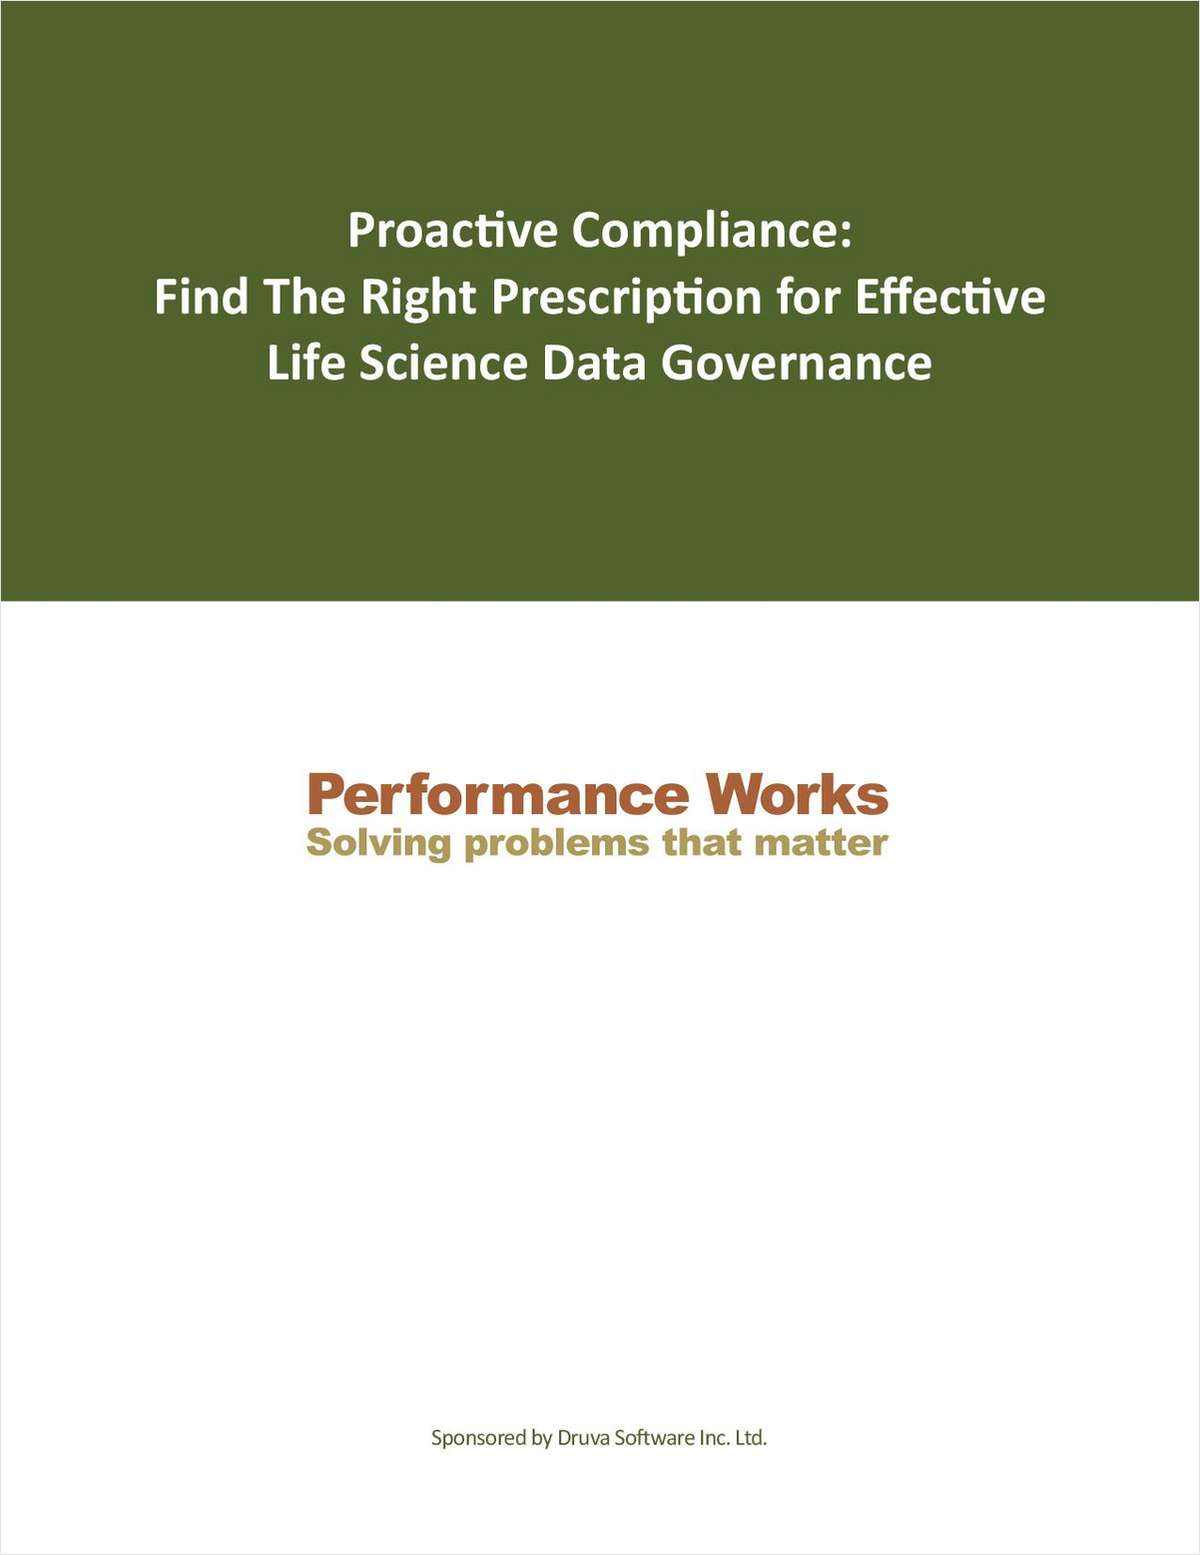 Proactive Compliance: Find The Right Prescription for Effective Life Science Data Governance